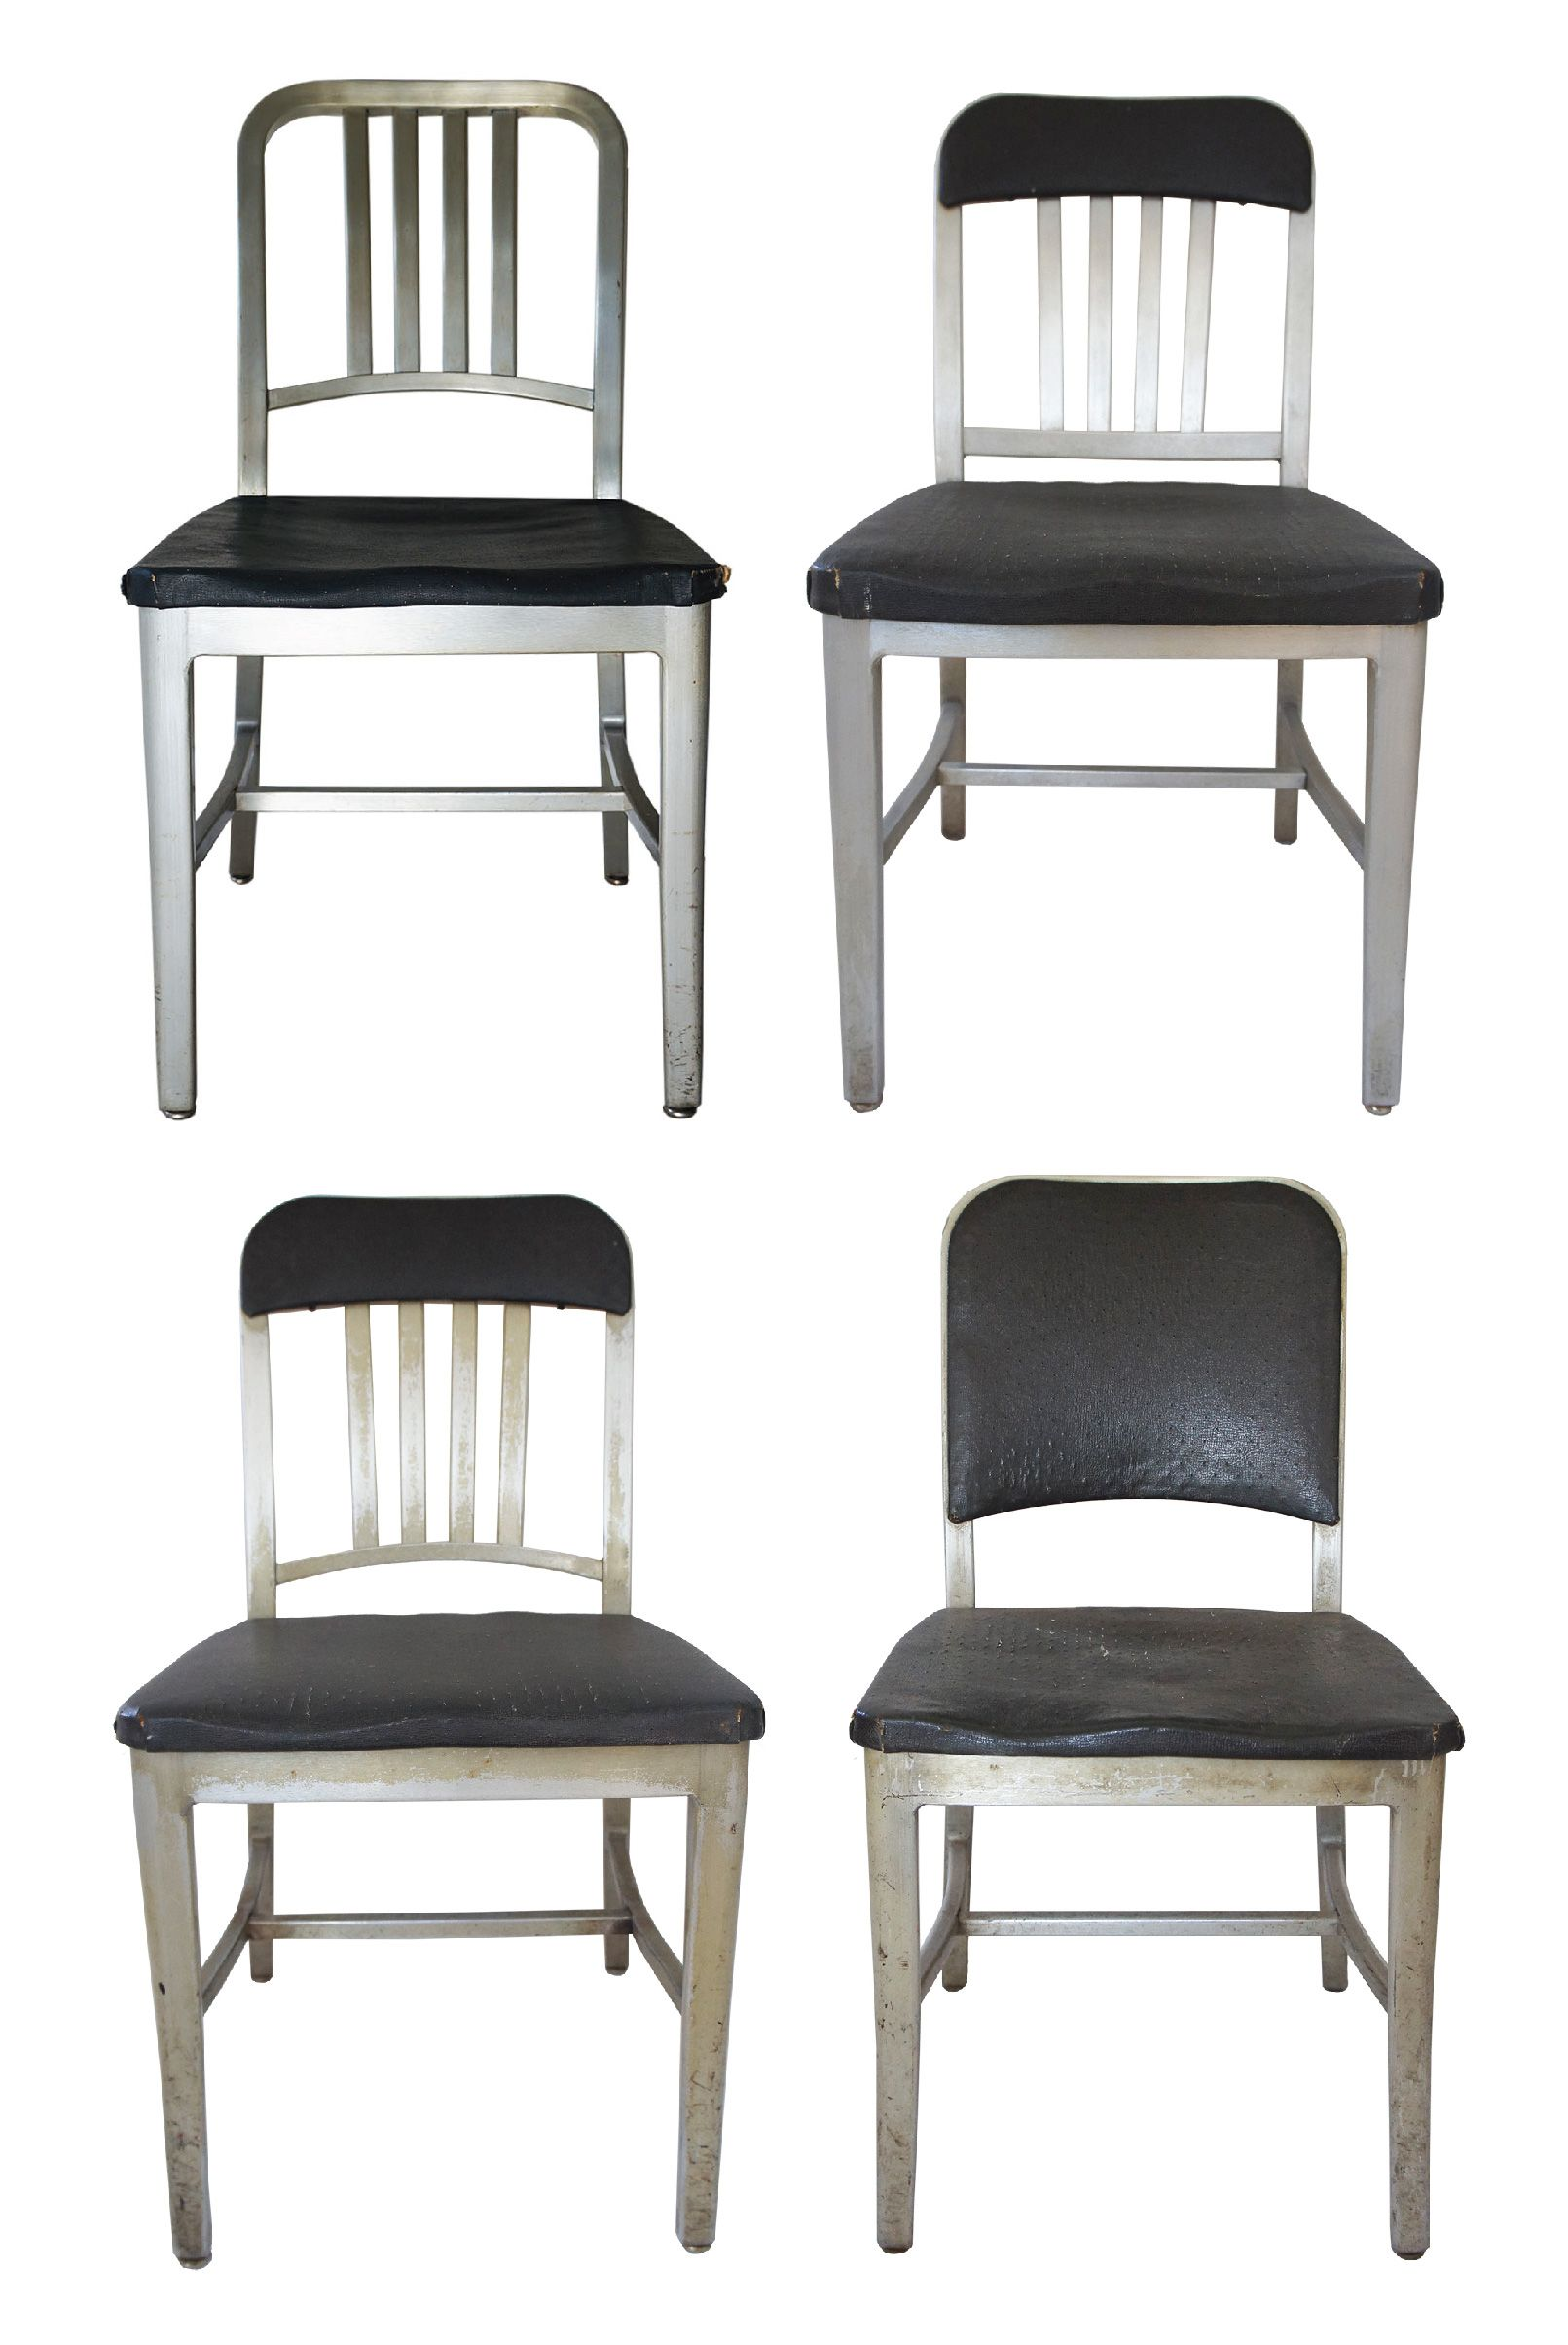 Emeco Aluminum Navy Chairs, Assorted   Set Of 4   Image 1 Of 5